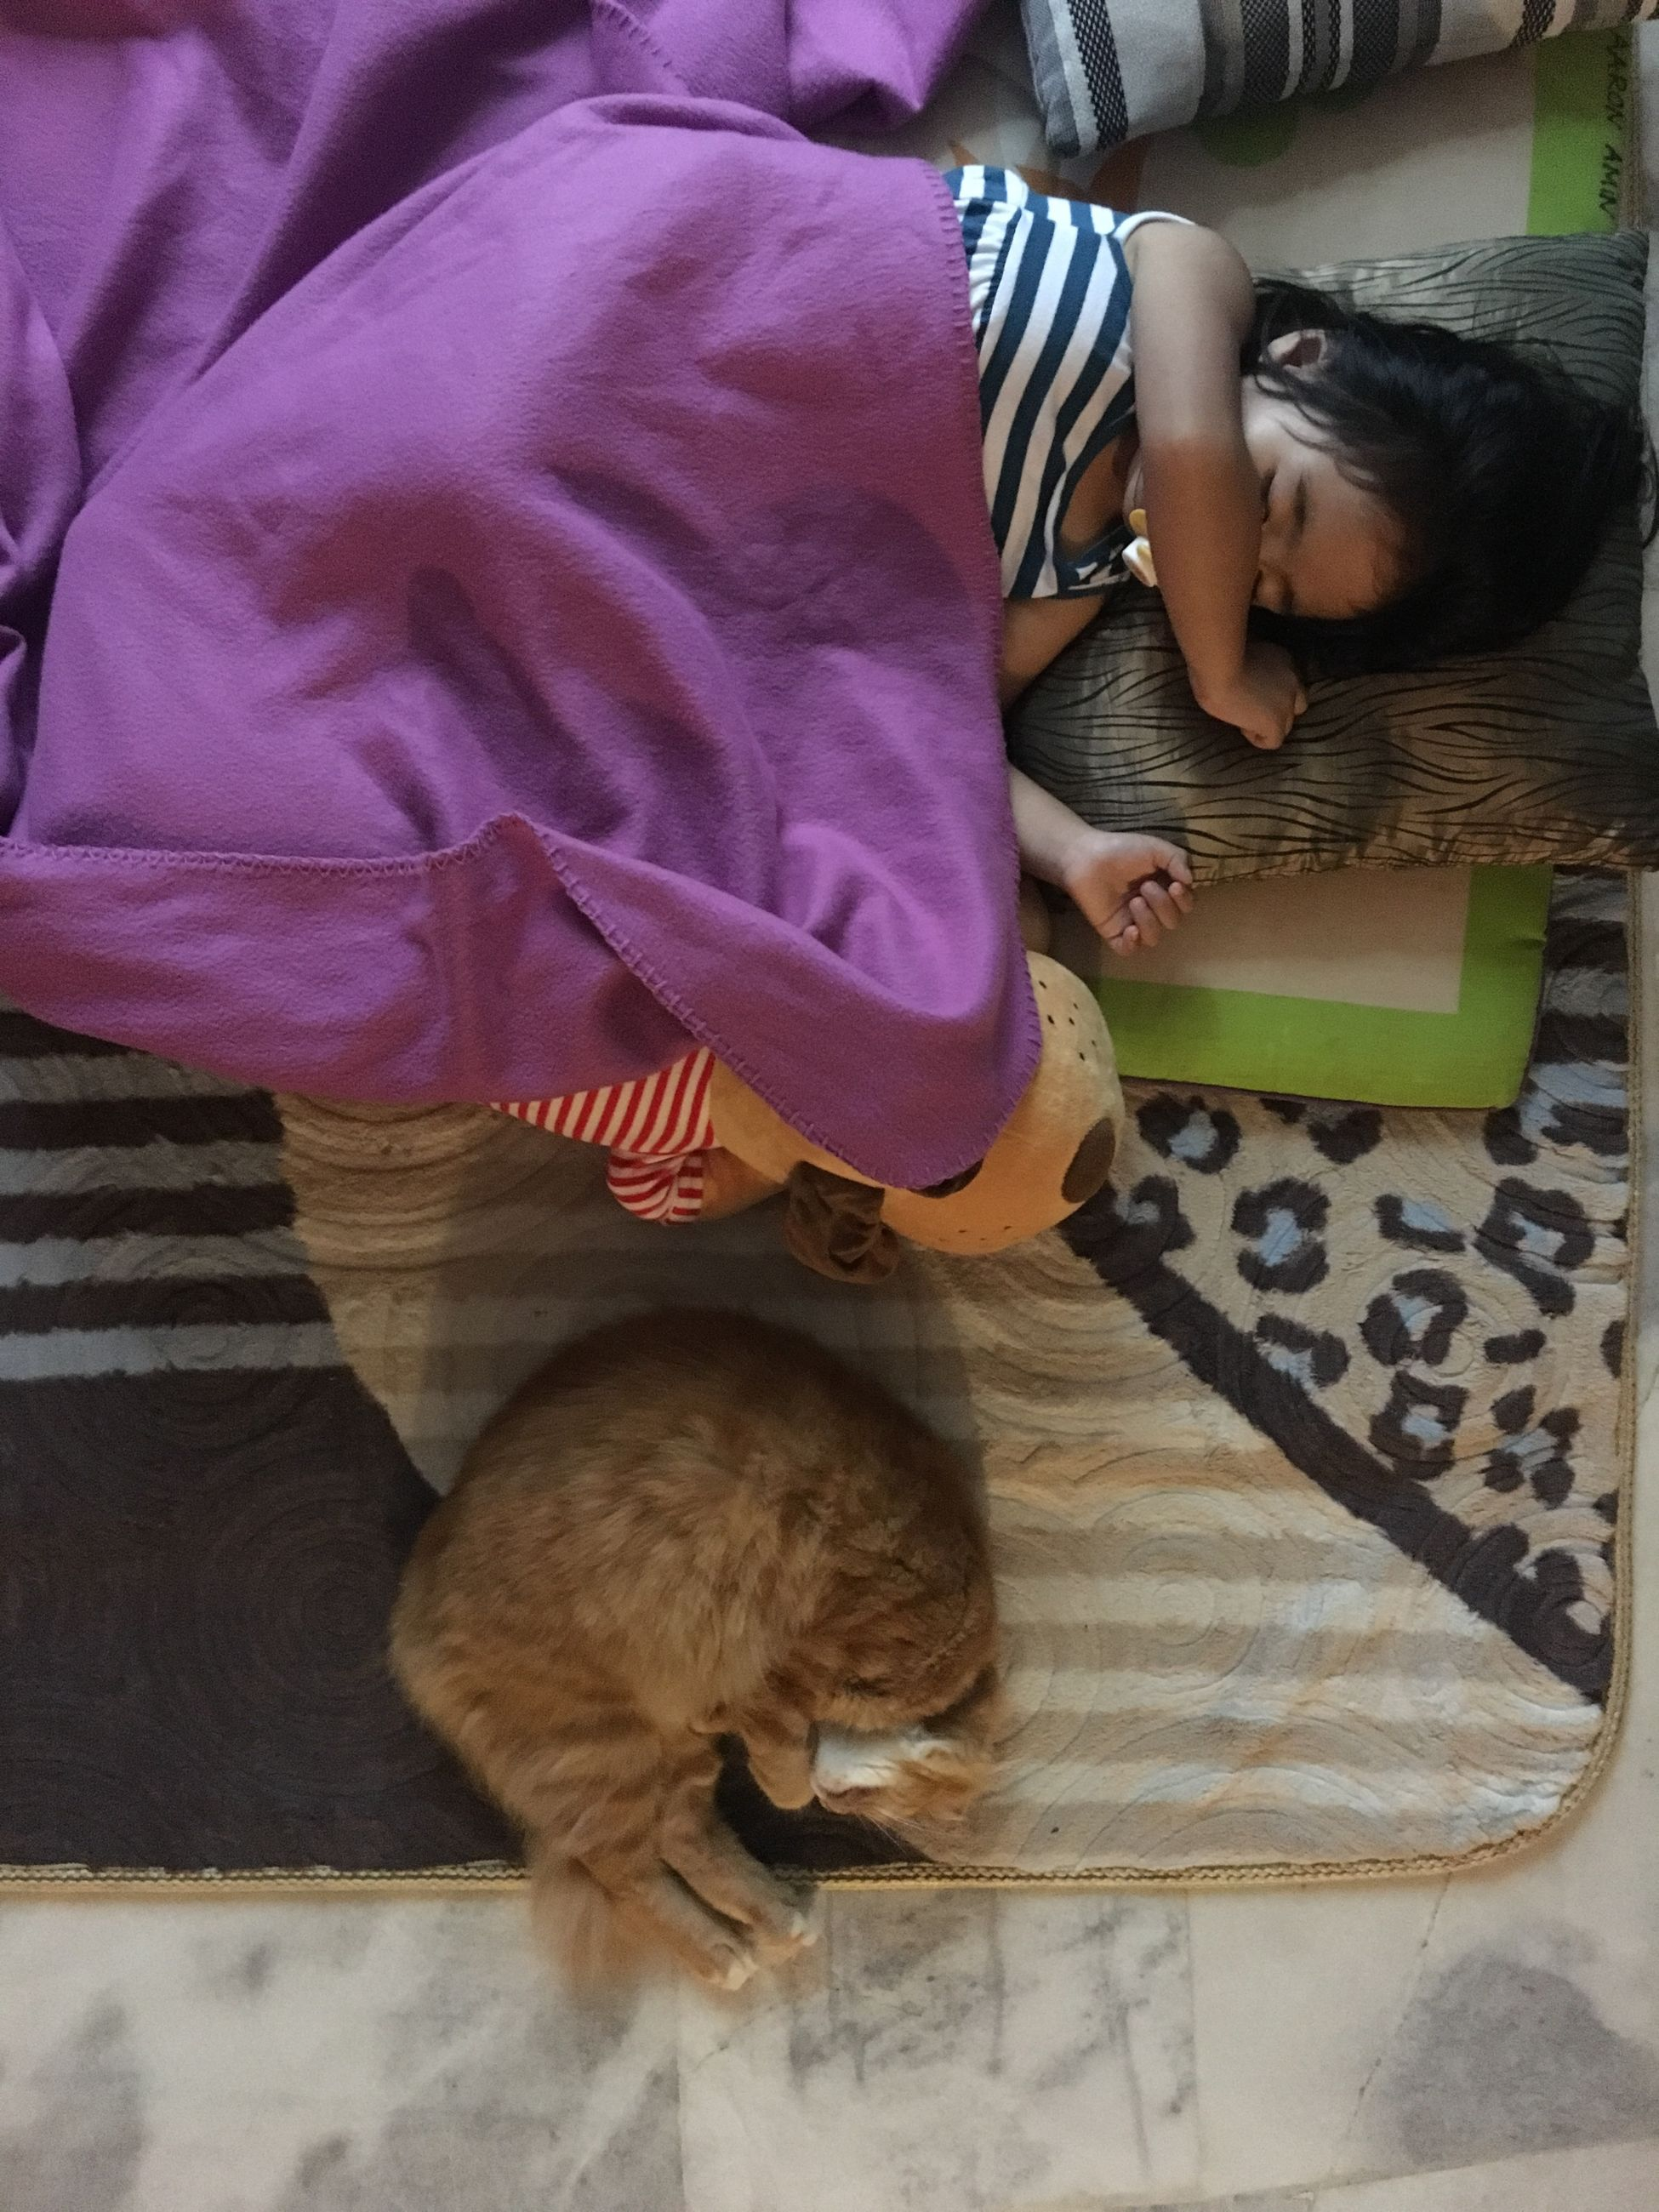 one animal, domestic animals, pets, one person, mammal, domestic, childhood, vertebrate, sleeping, child, furniture, full length, casual clothing, high angle view, lifestyles, indoors, relaxation, flooring, domestic cat, innocence